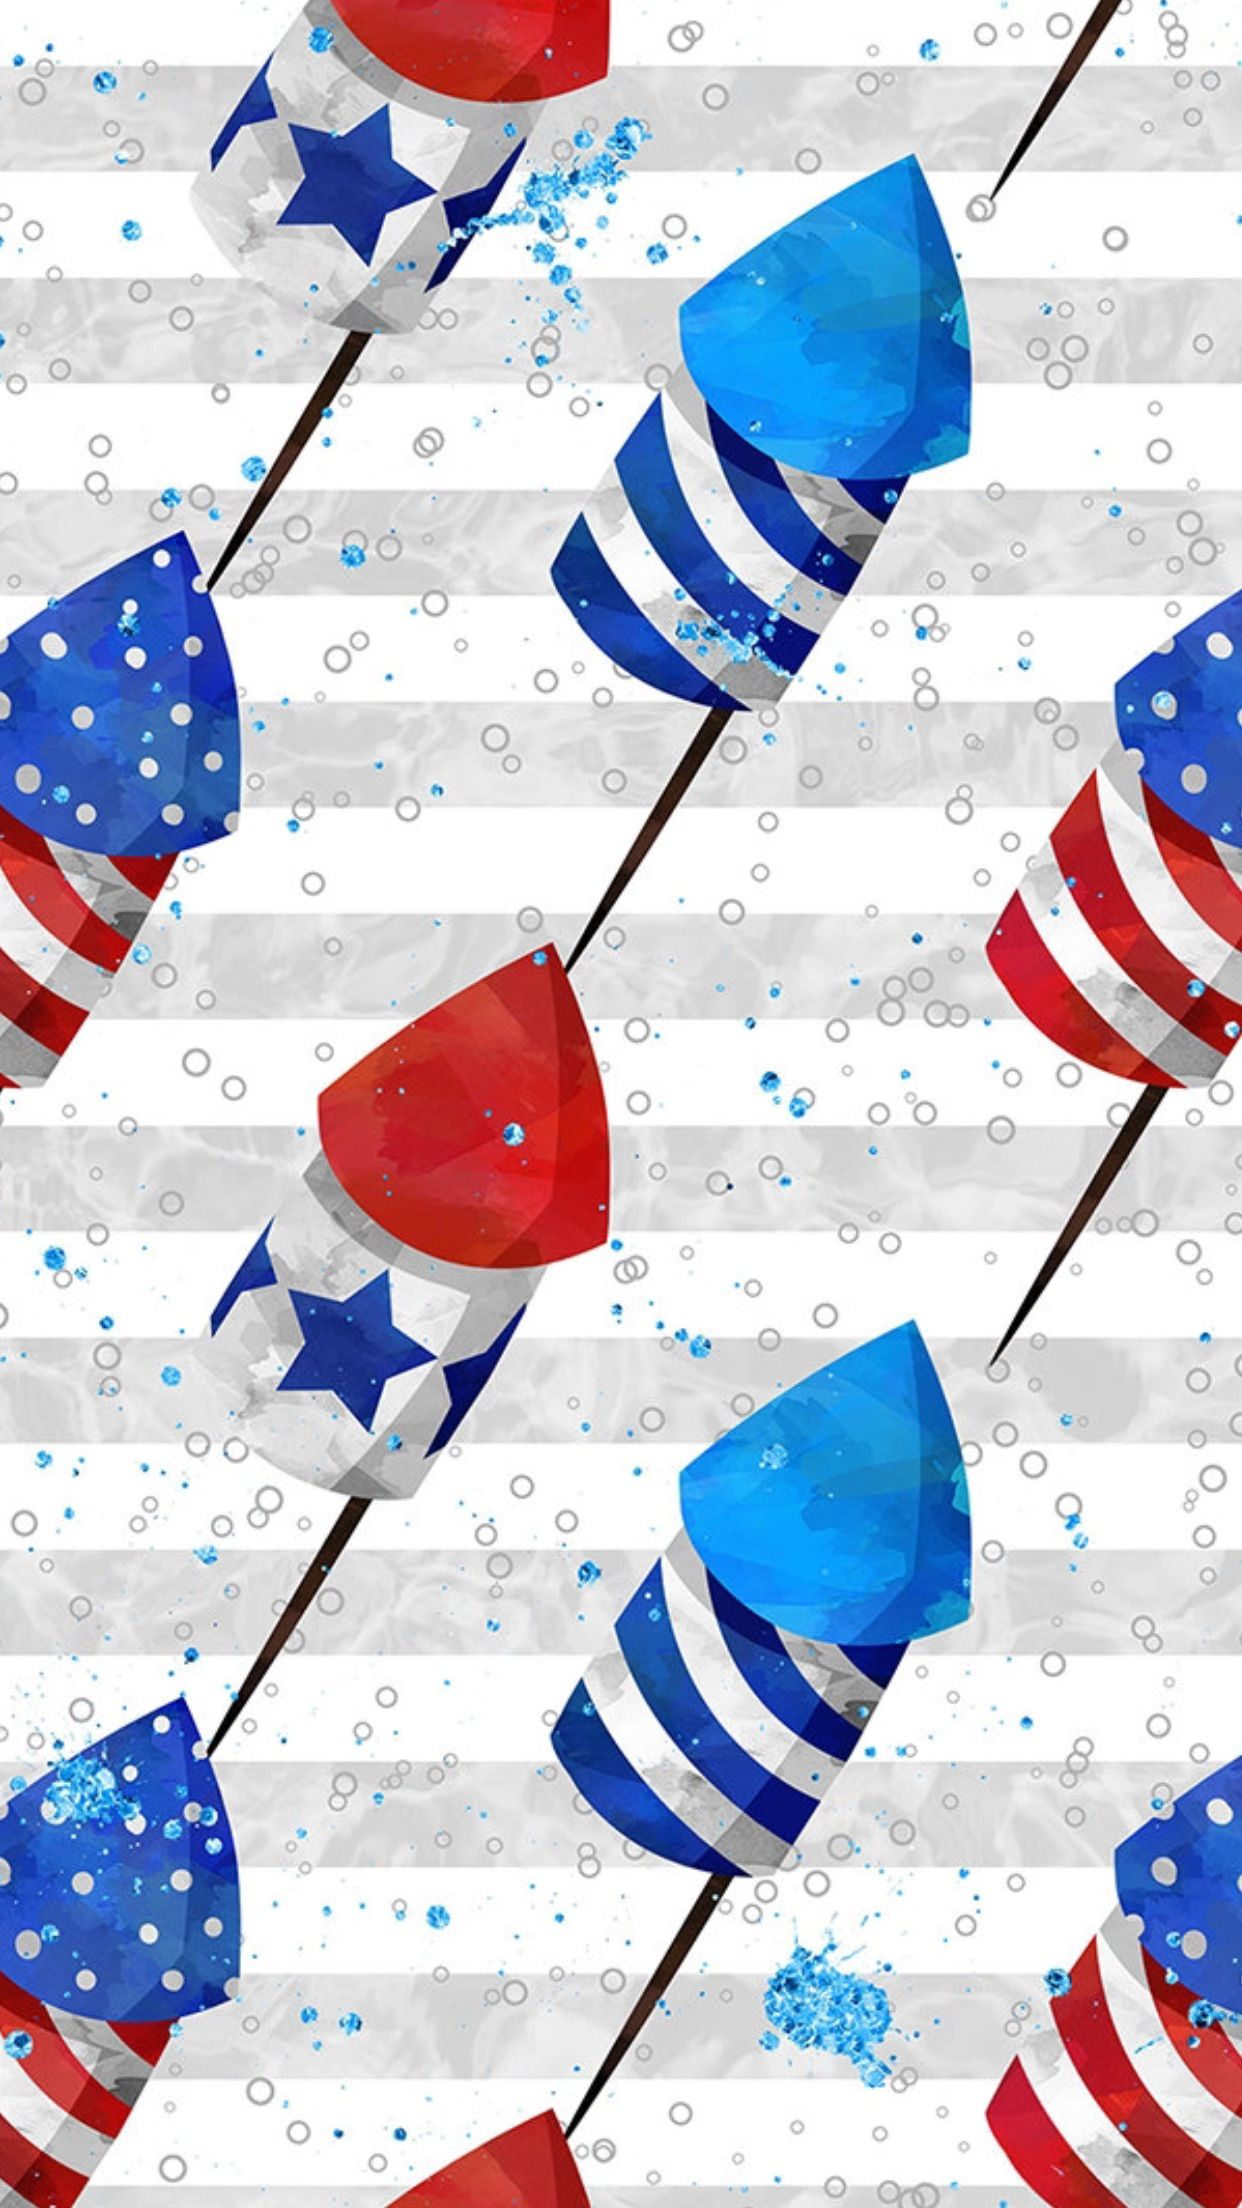 Pin By Laura Robinson On Phone Wallpapers 4th Of July Wallpaper Summer Wallpaper Phone Holiday Wallpaper